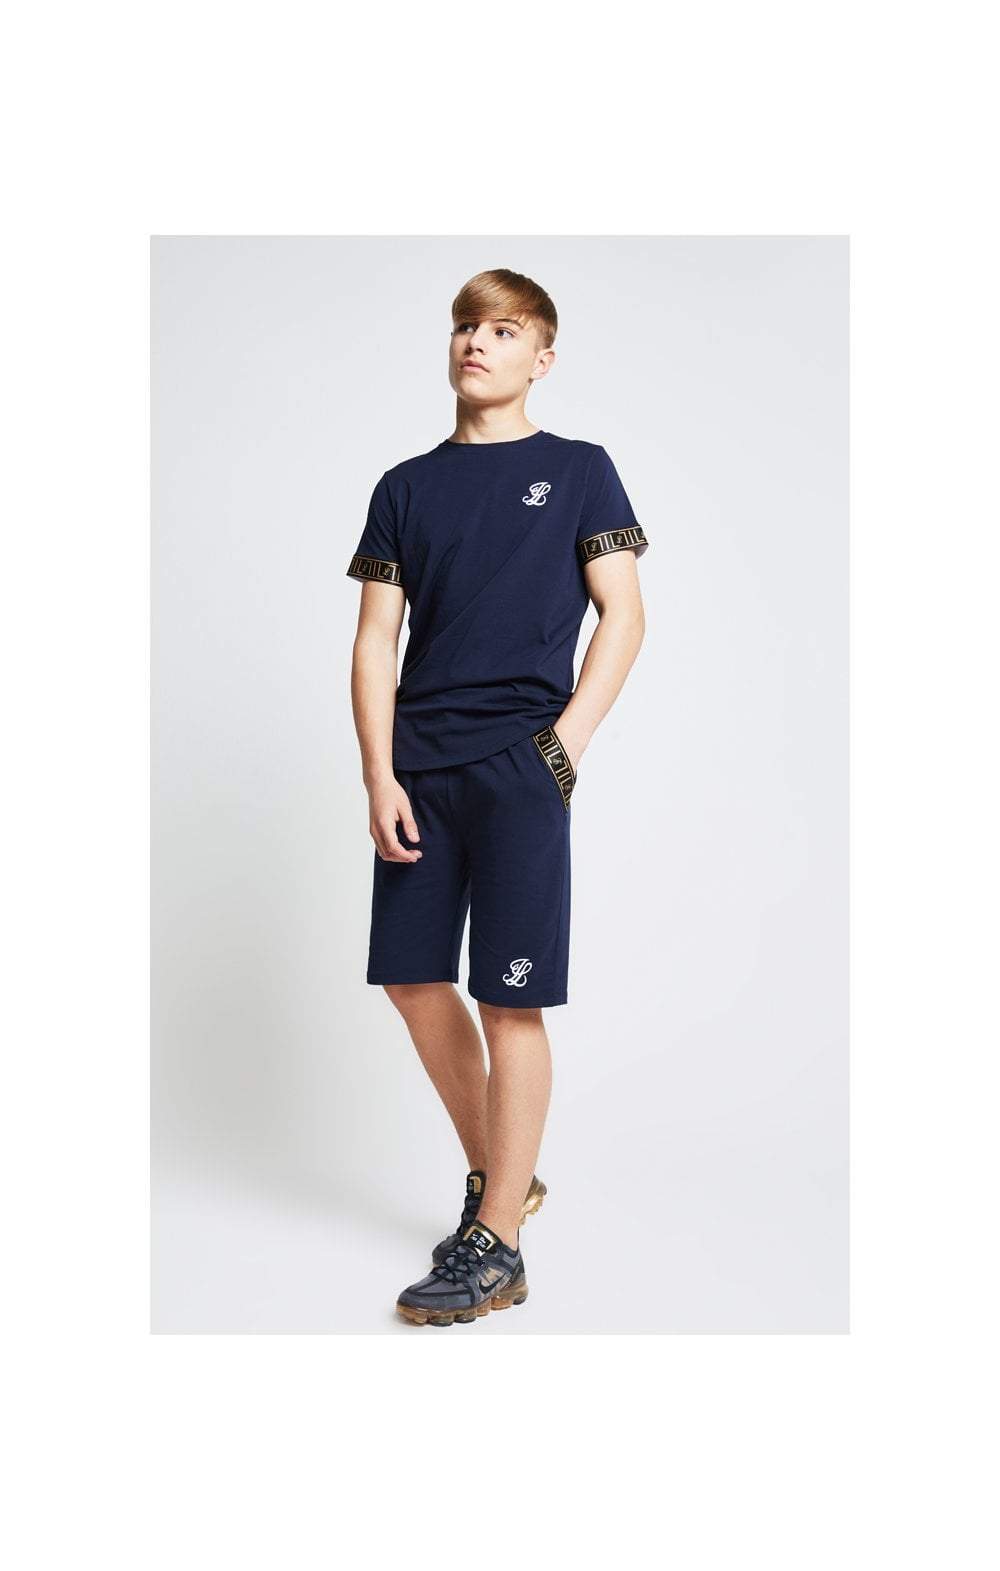 Illusive London Tape Jersey Shorts - Navy (3)